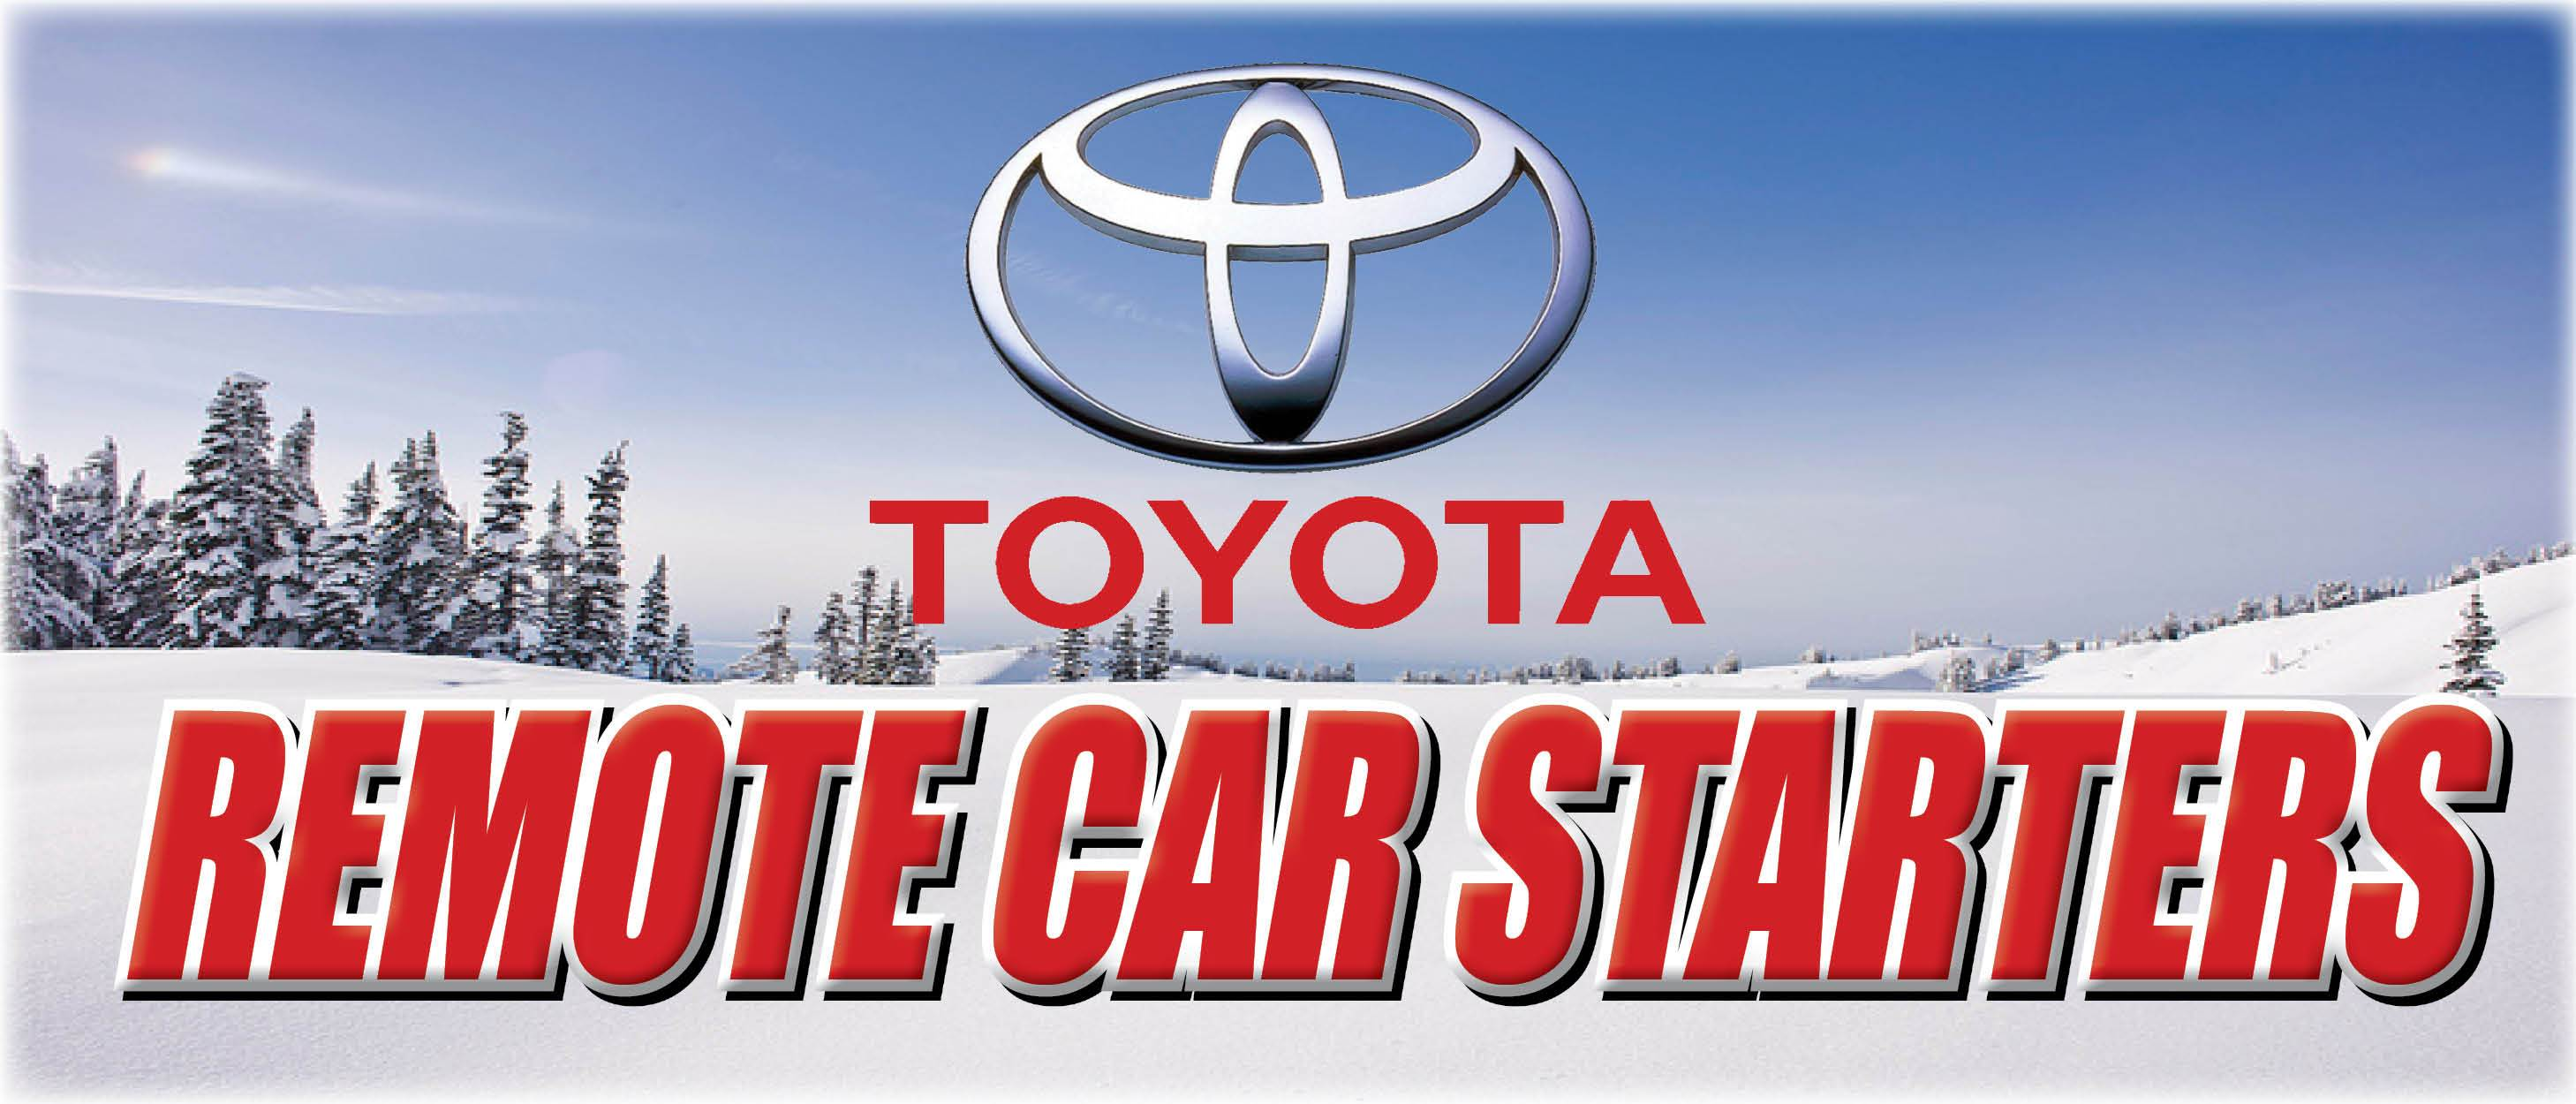 Toyota Remote Start Cost >> Toyota Remote Car Starters In Nh Irwin Toyota